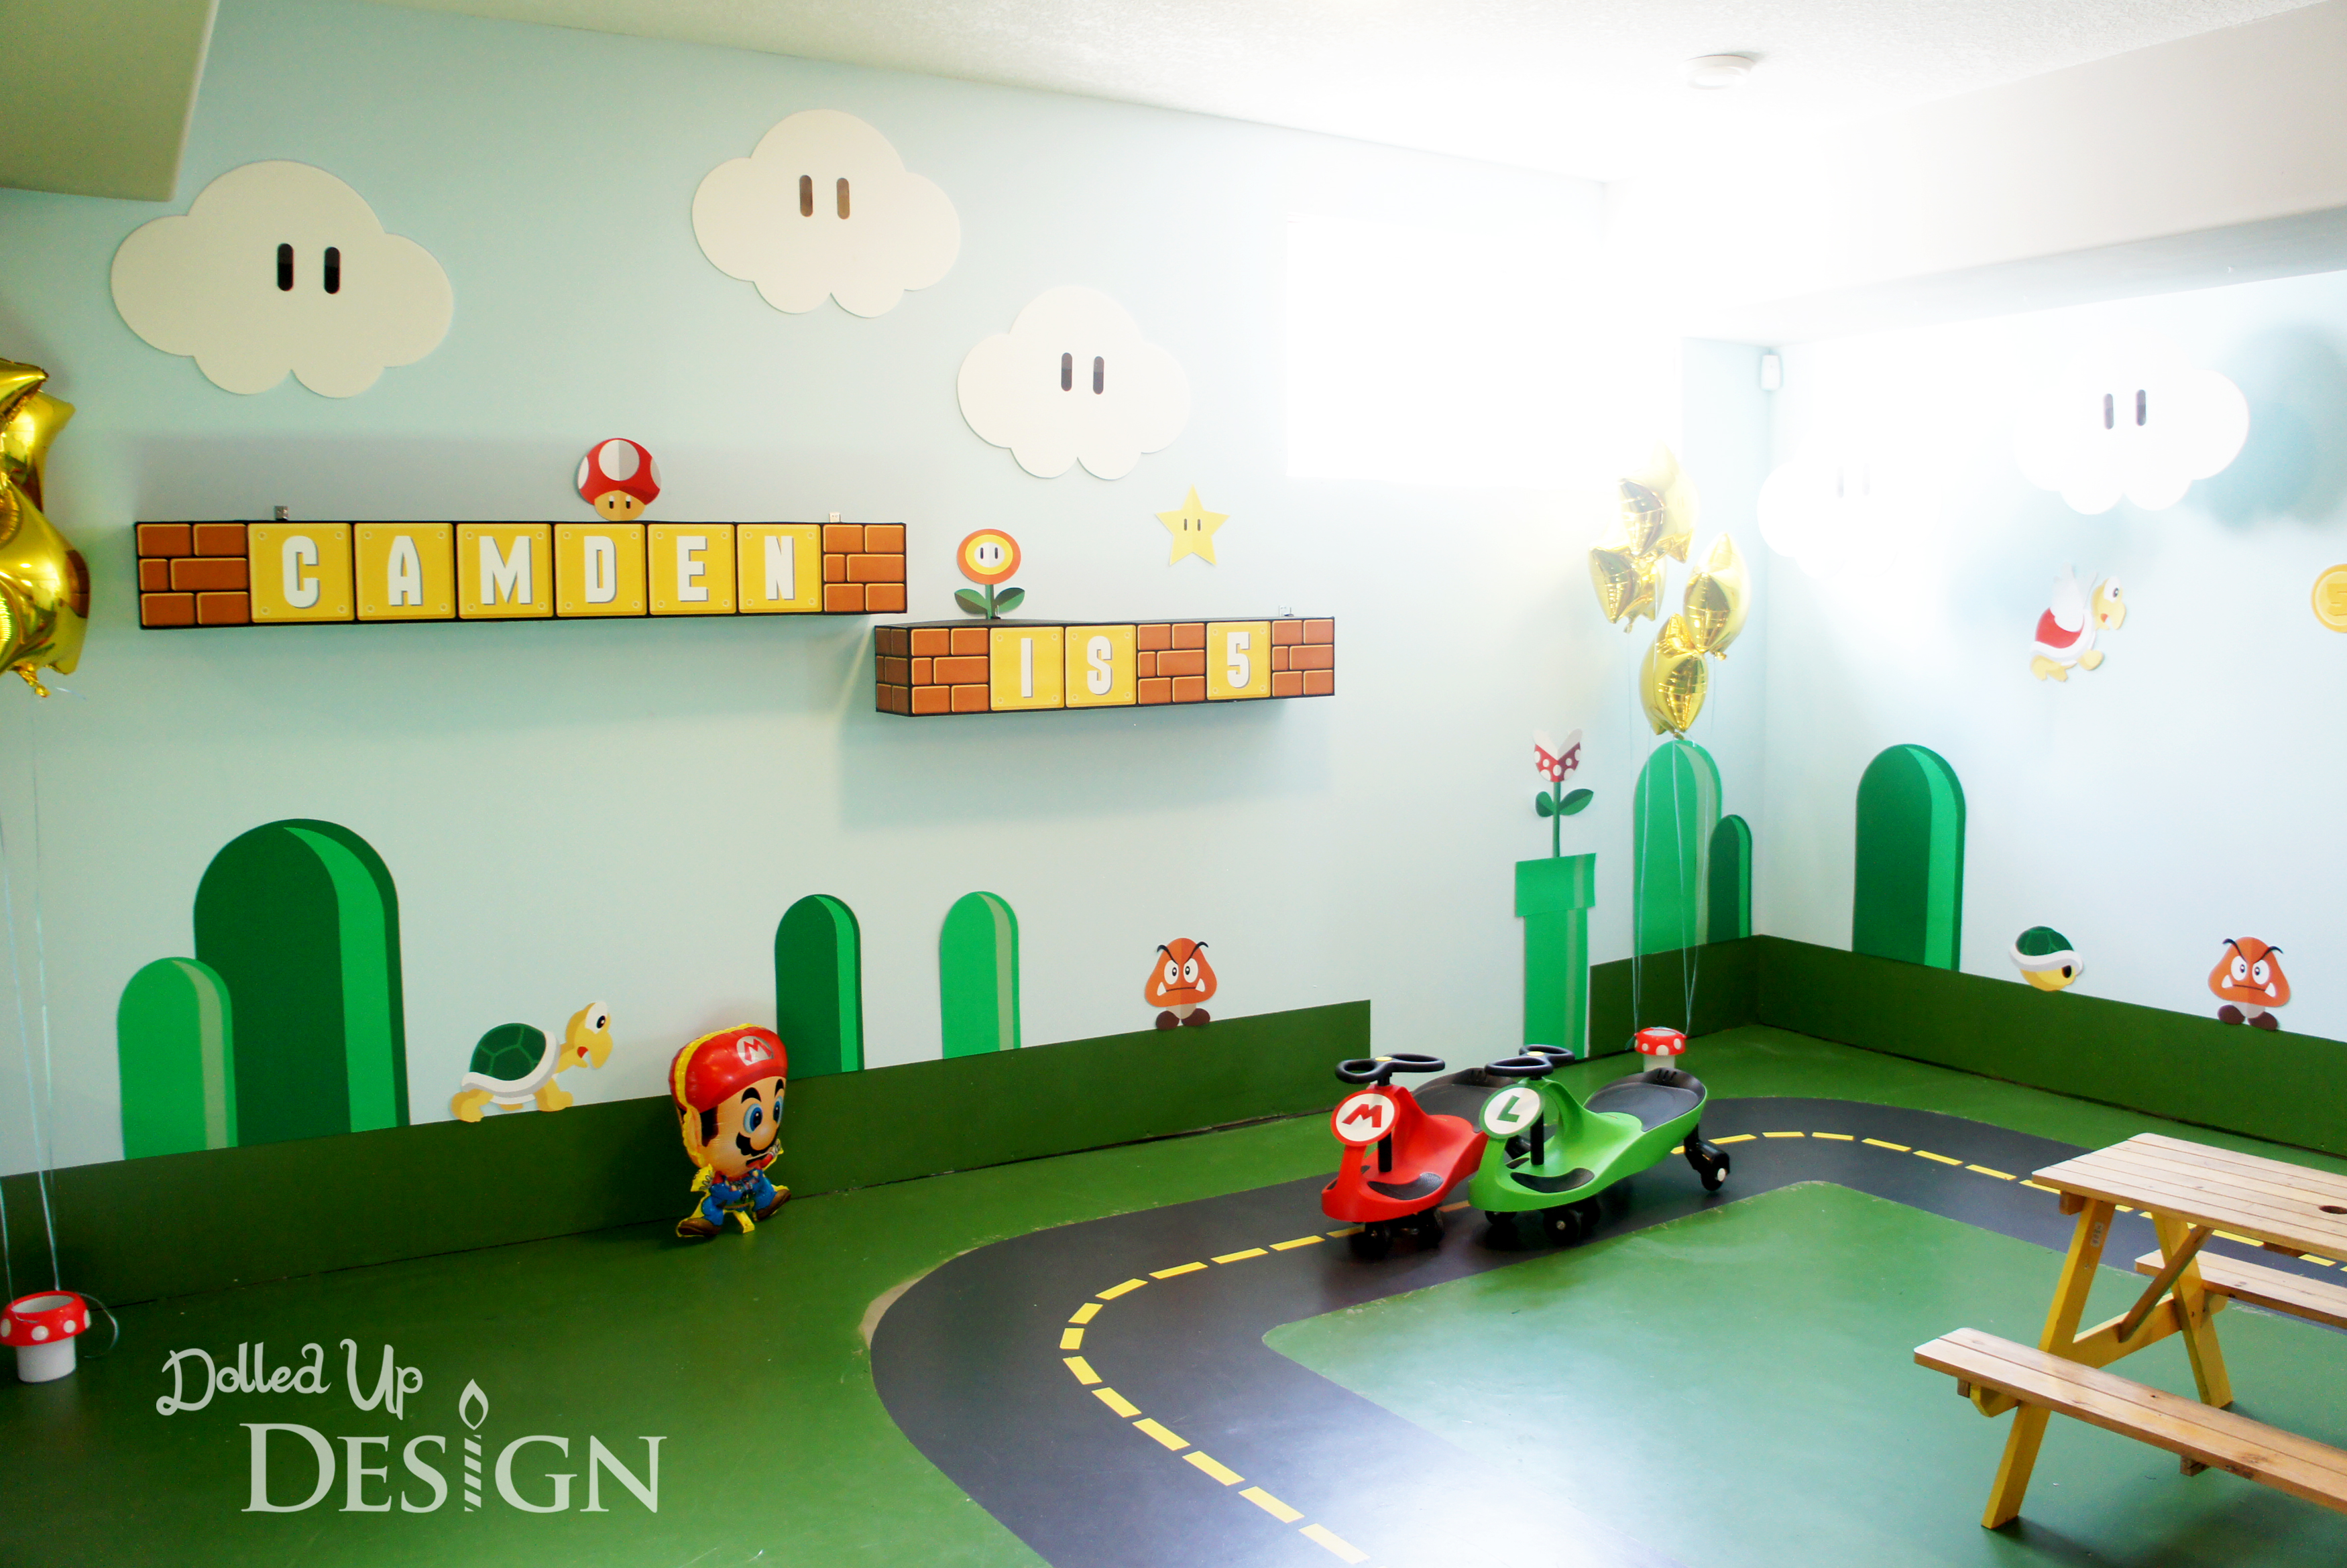 A super mario 5th birthday Game decoration